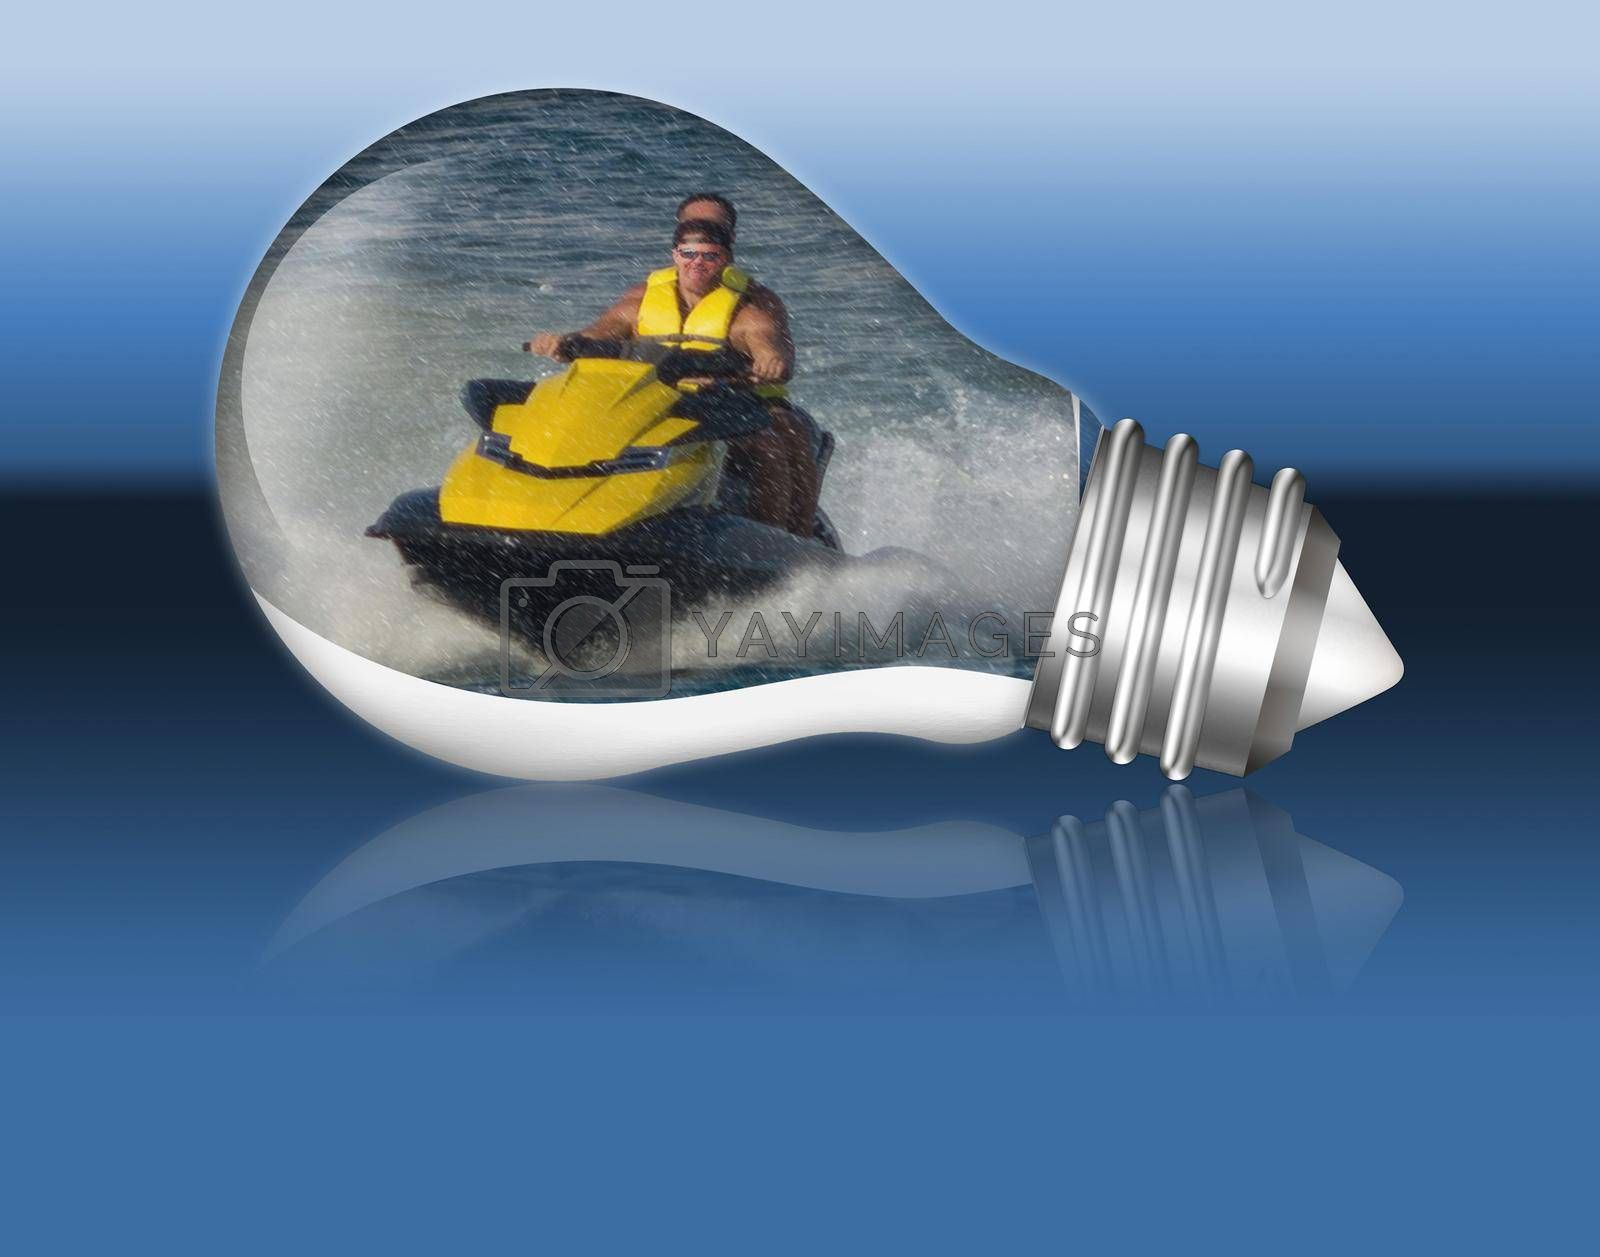 Royalty free image of Jet ski in a lightbulb.   by JFsPic